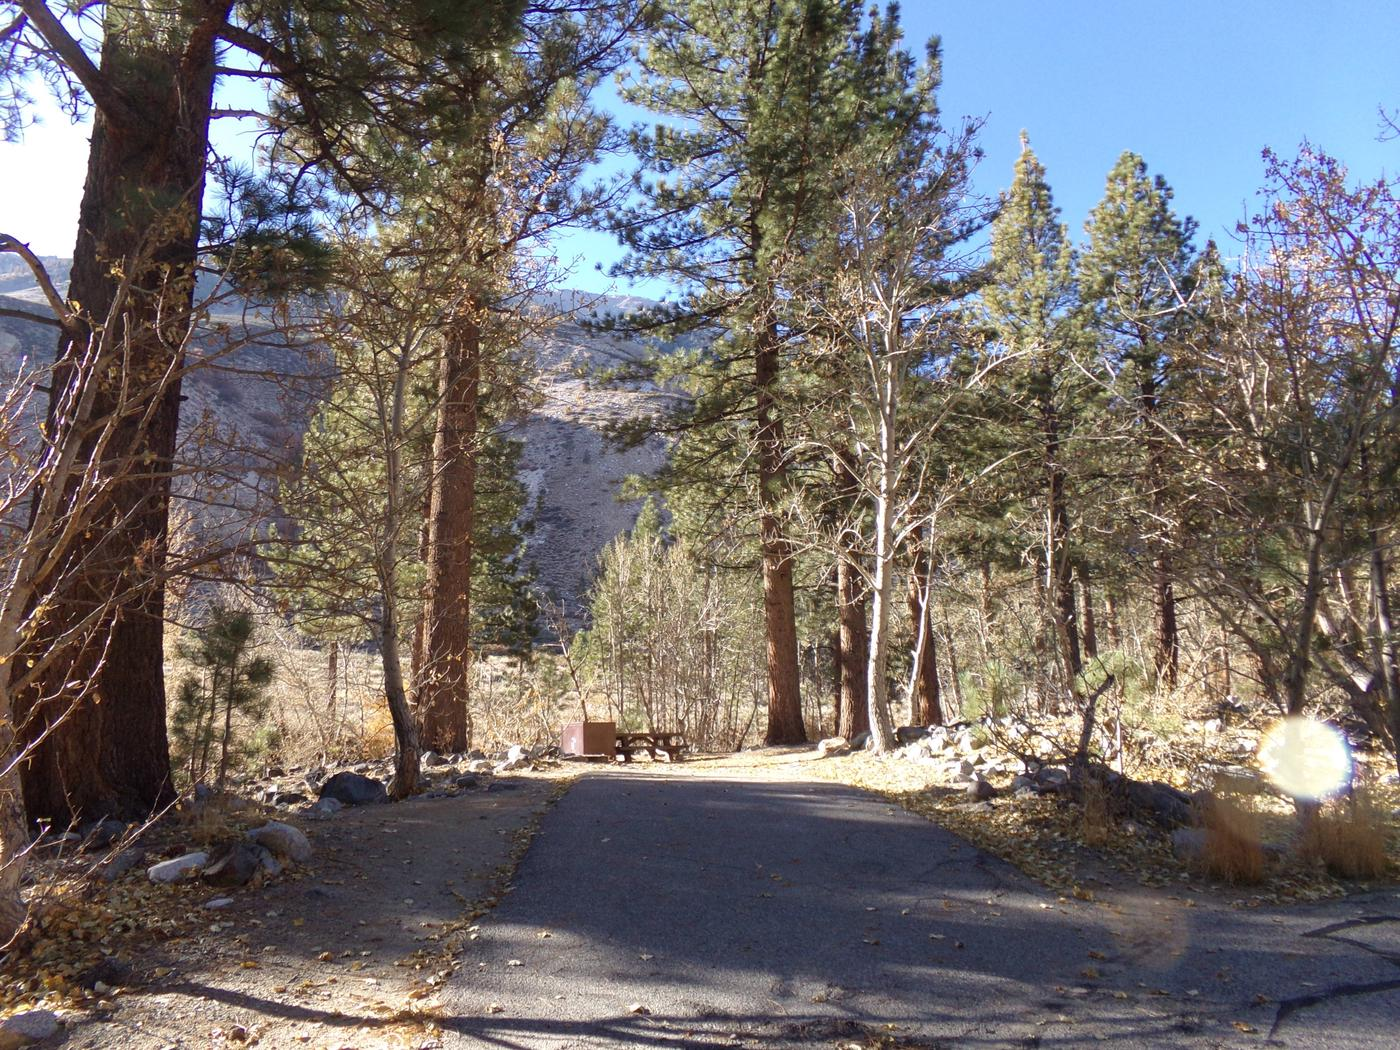 Parking space and entrance to site #17, Upper Sage Flat Campground.